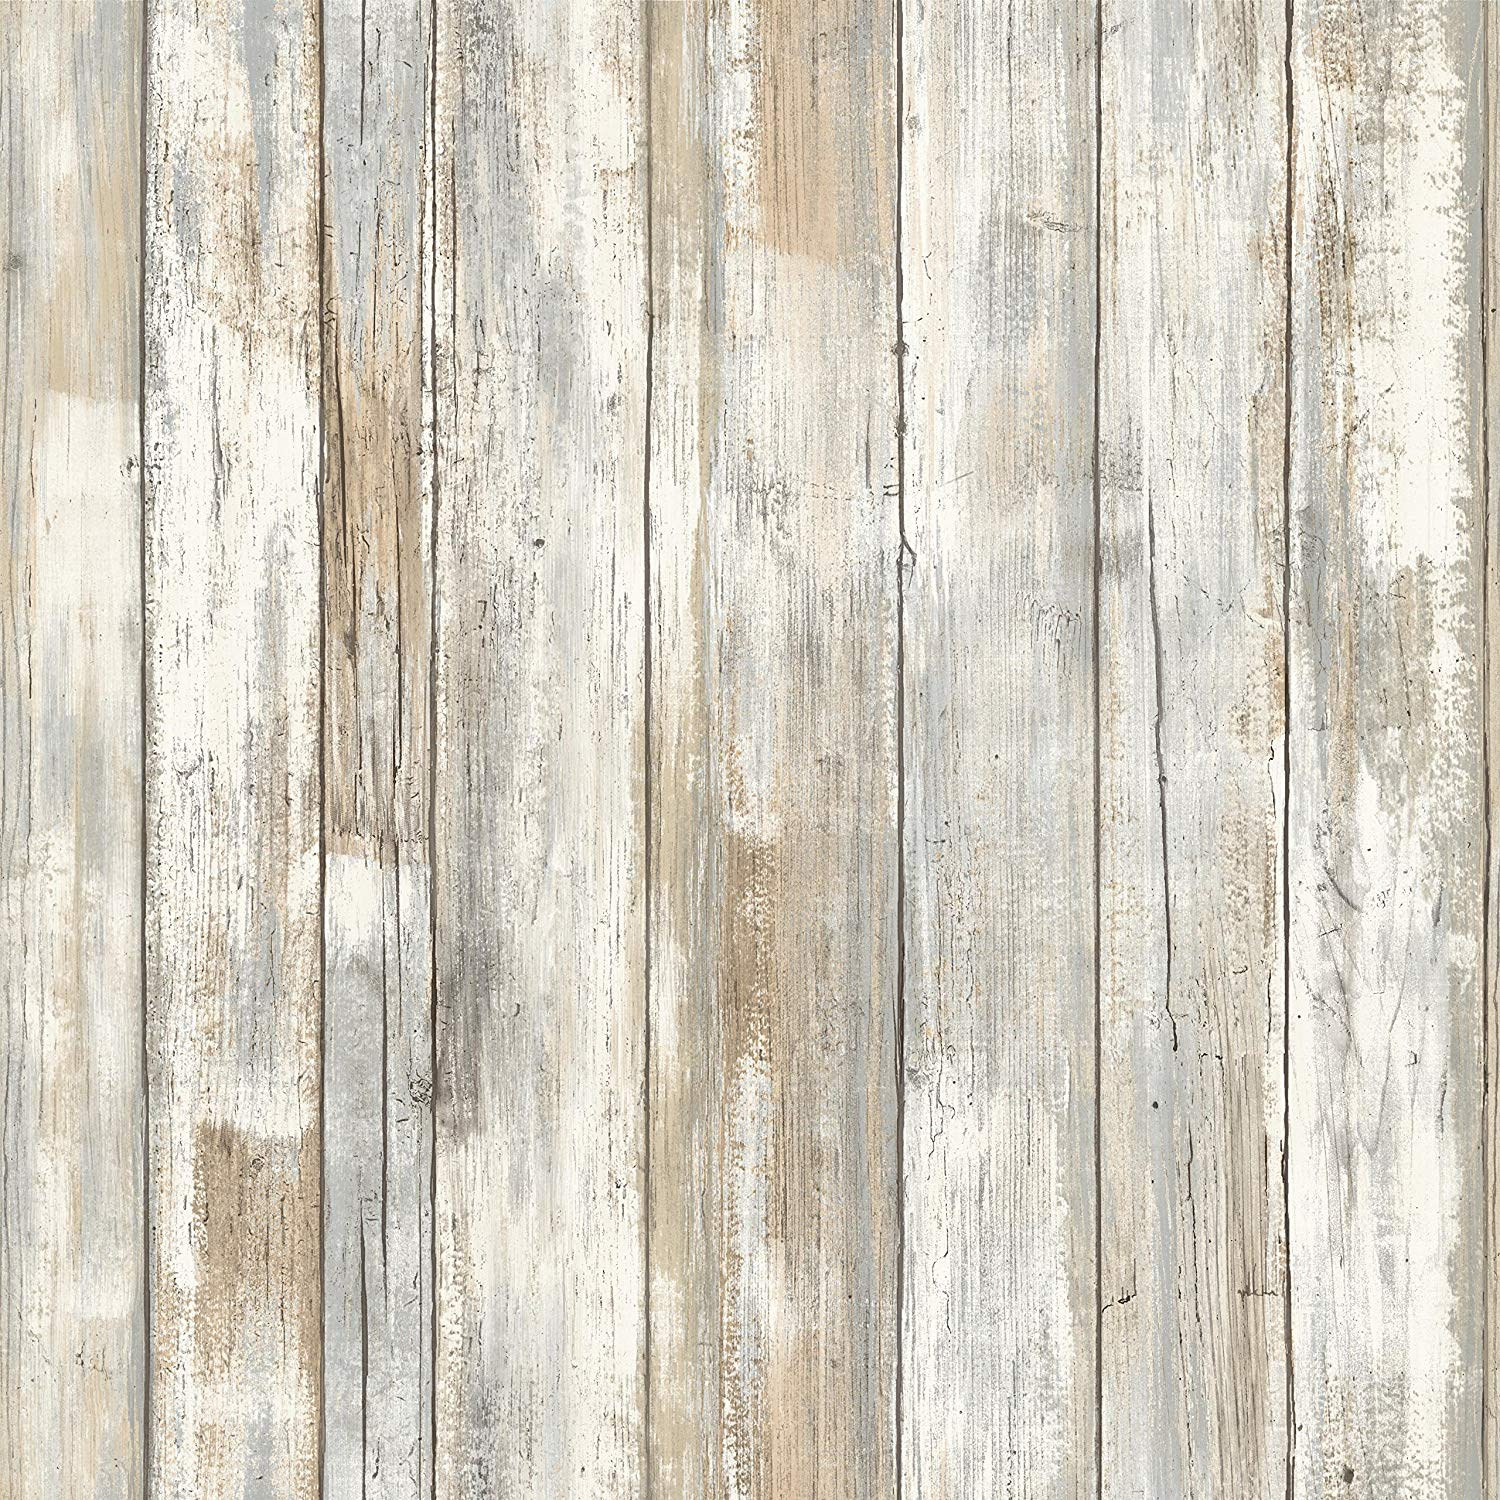 RoomMates Distressed Wood Peel and Stick Wallpaper     Amazoncom 1500x1500